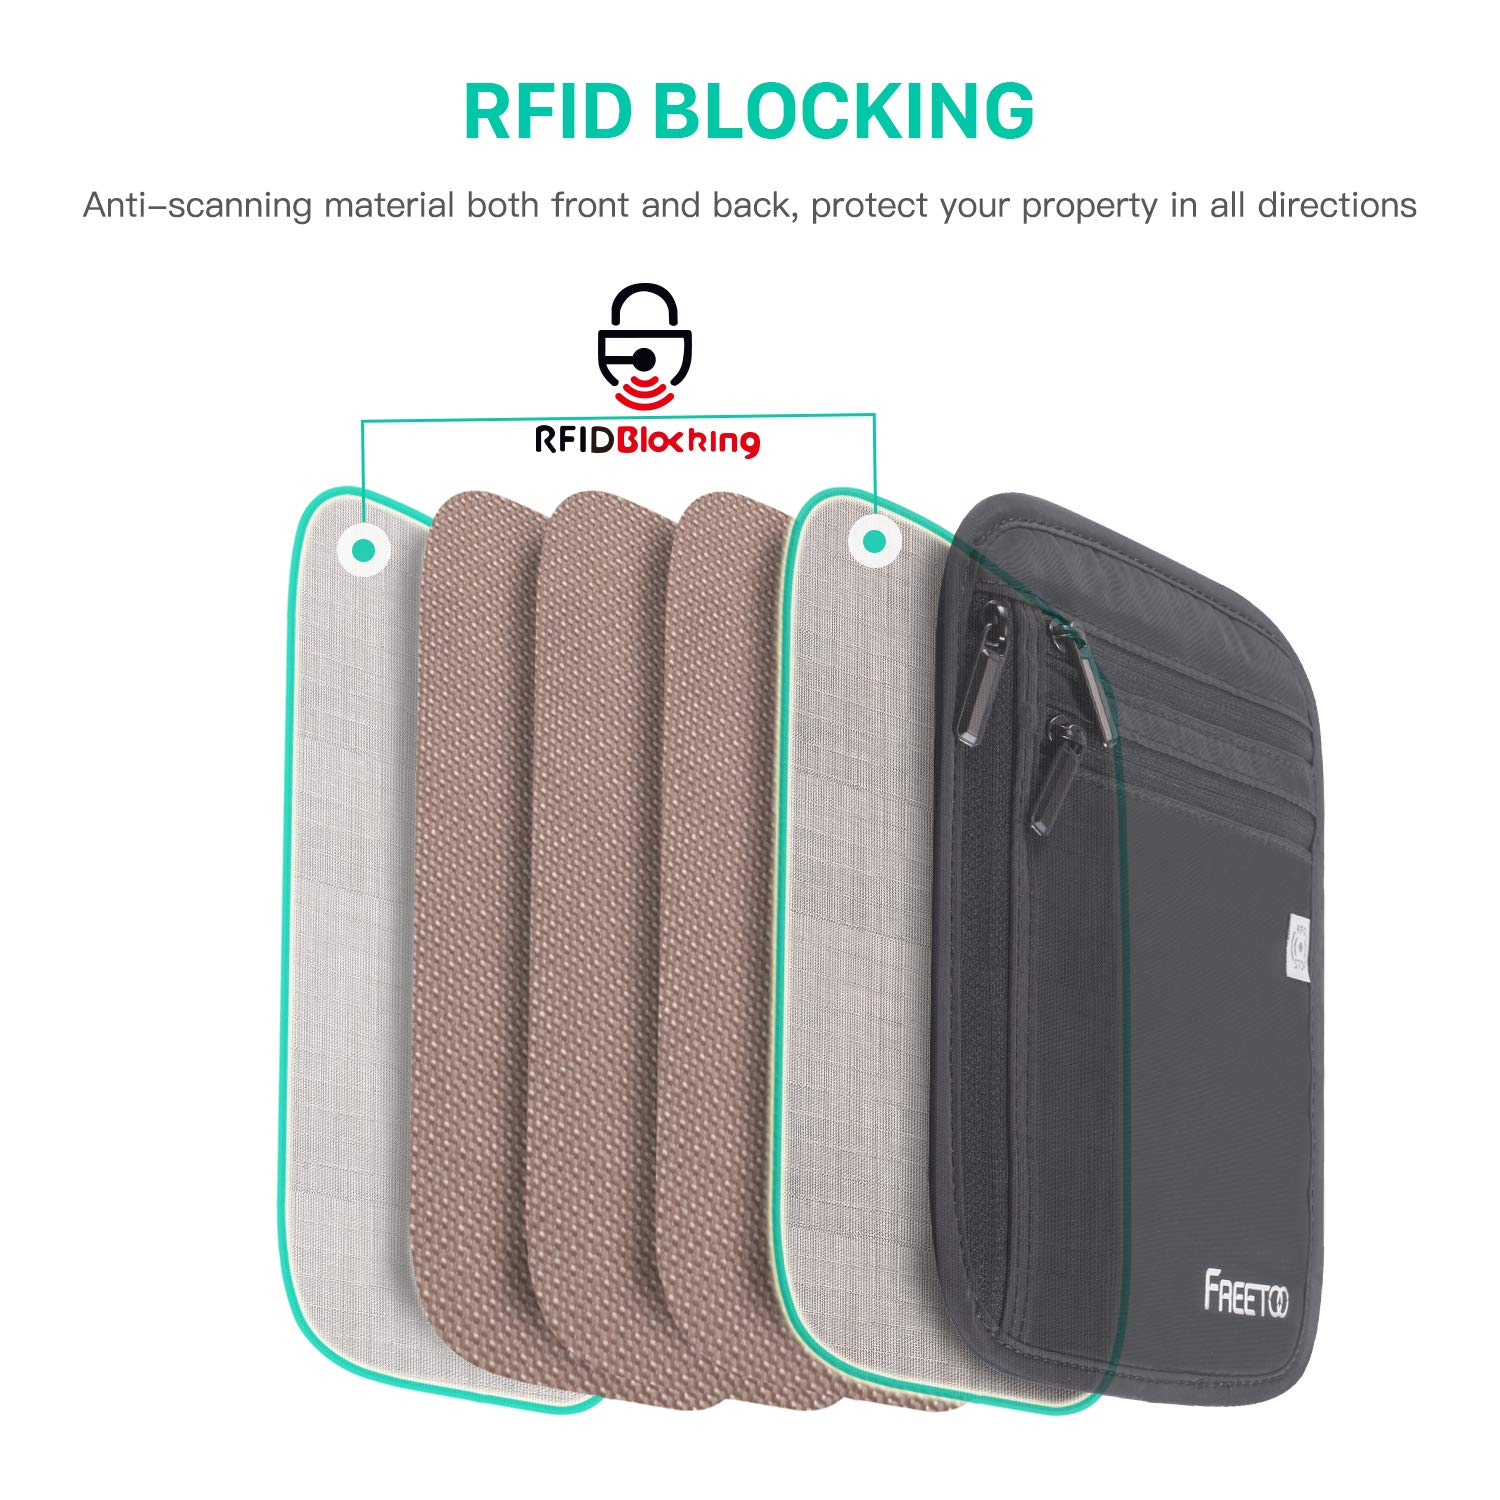 FREETOO Travel Neck Wallet Neck Pouch with RFID Blocking Passport Holder Family Anti-Theft Hidden Passport Wallet for Men Women to Keep Your Passport and Credit Card Safe